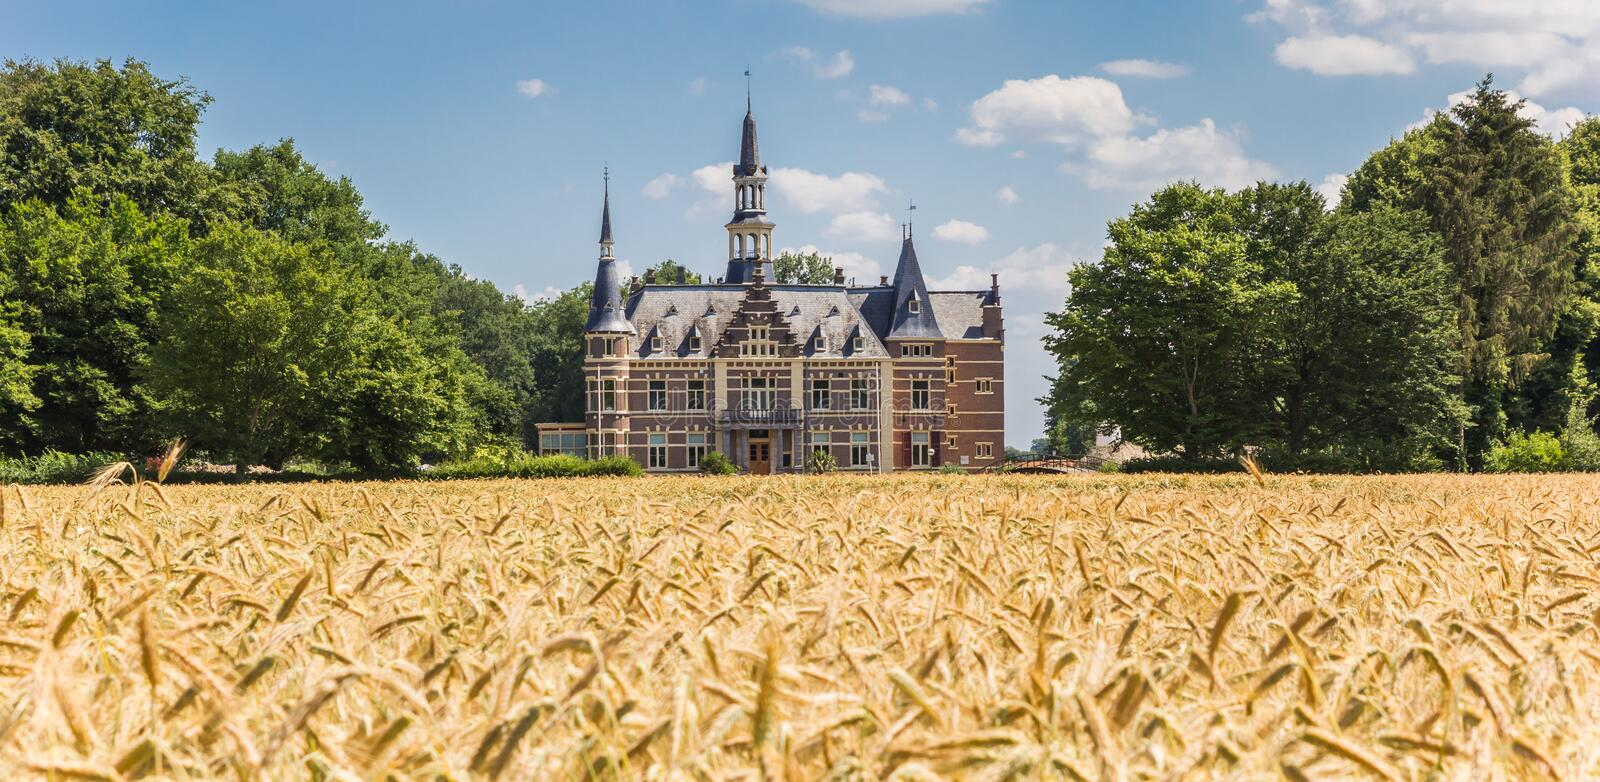 Panorama of castle Cloese near historic town Lochem. Netherlands royalty free stock photo